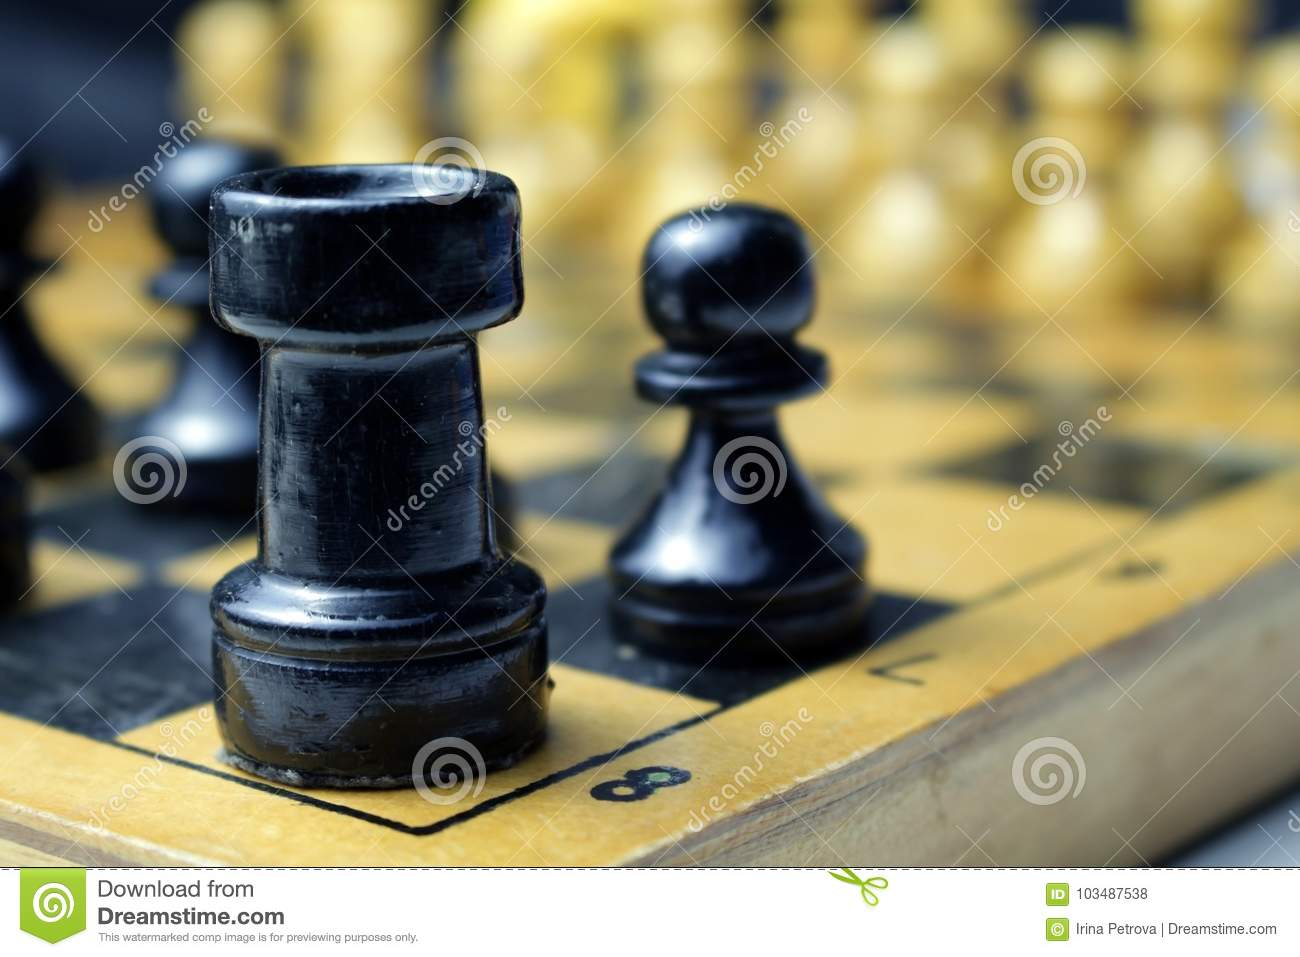 Black Chess Pieces The Rook And The Pawn On The Board Stock